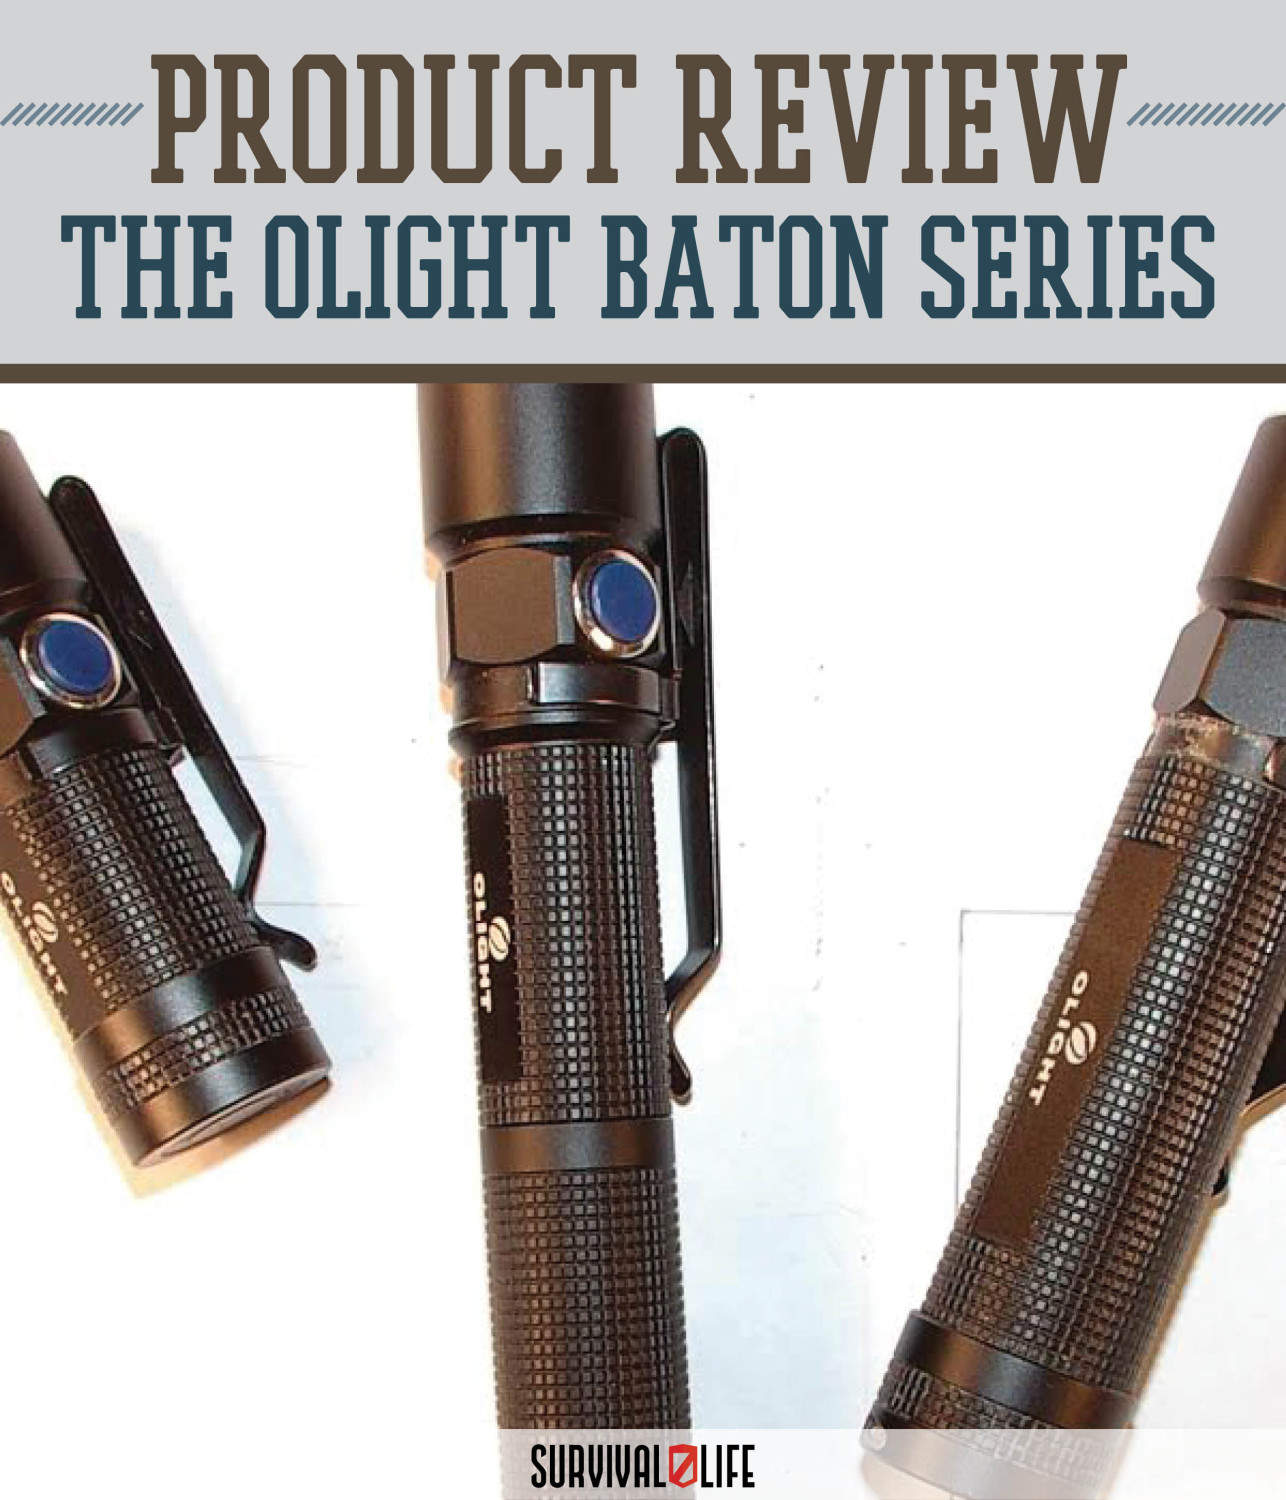 Product Review: Olight Baton S10, S15 and S20 by Survival Life at http://survivallife.staging.wpengine.com/2015/05/08/product-review-olight-baton/